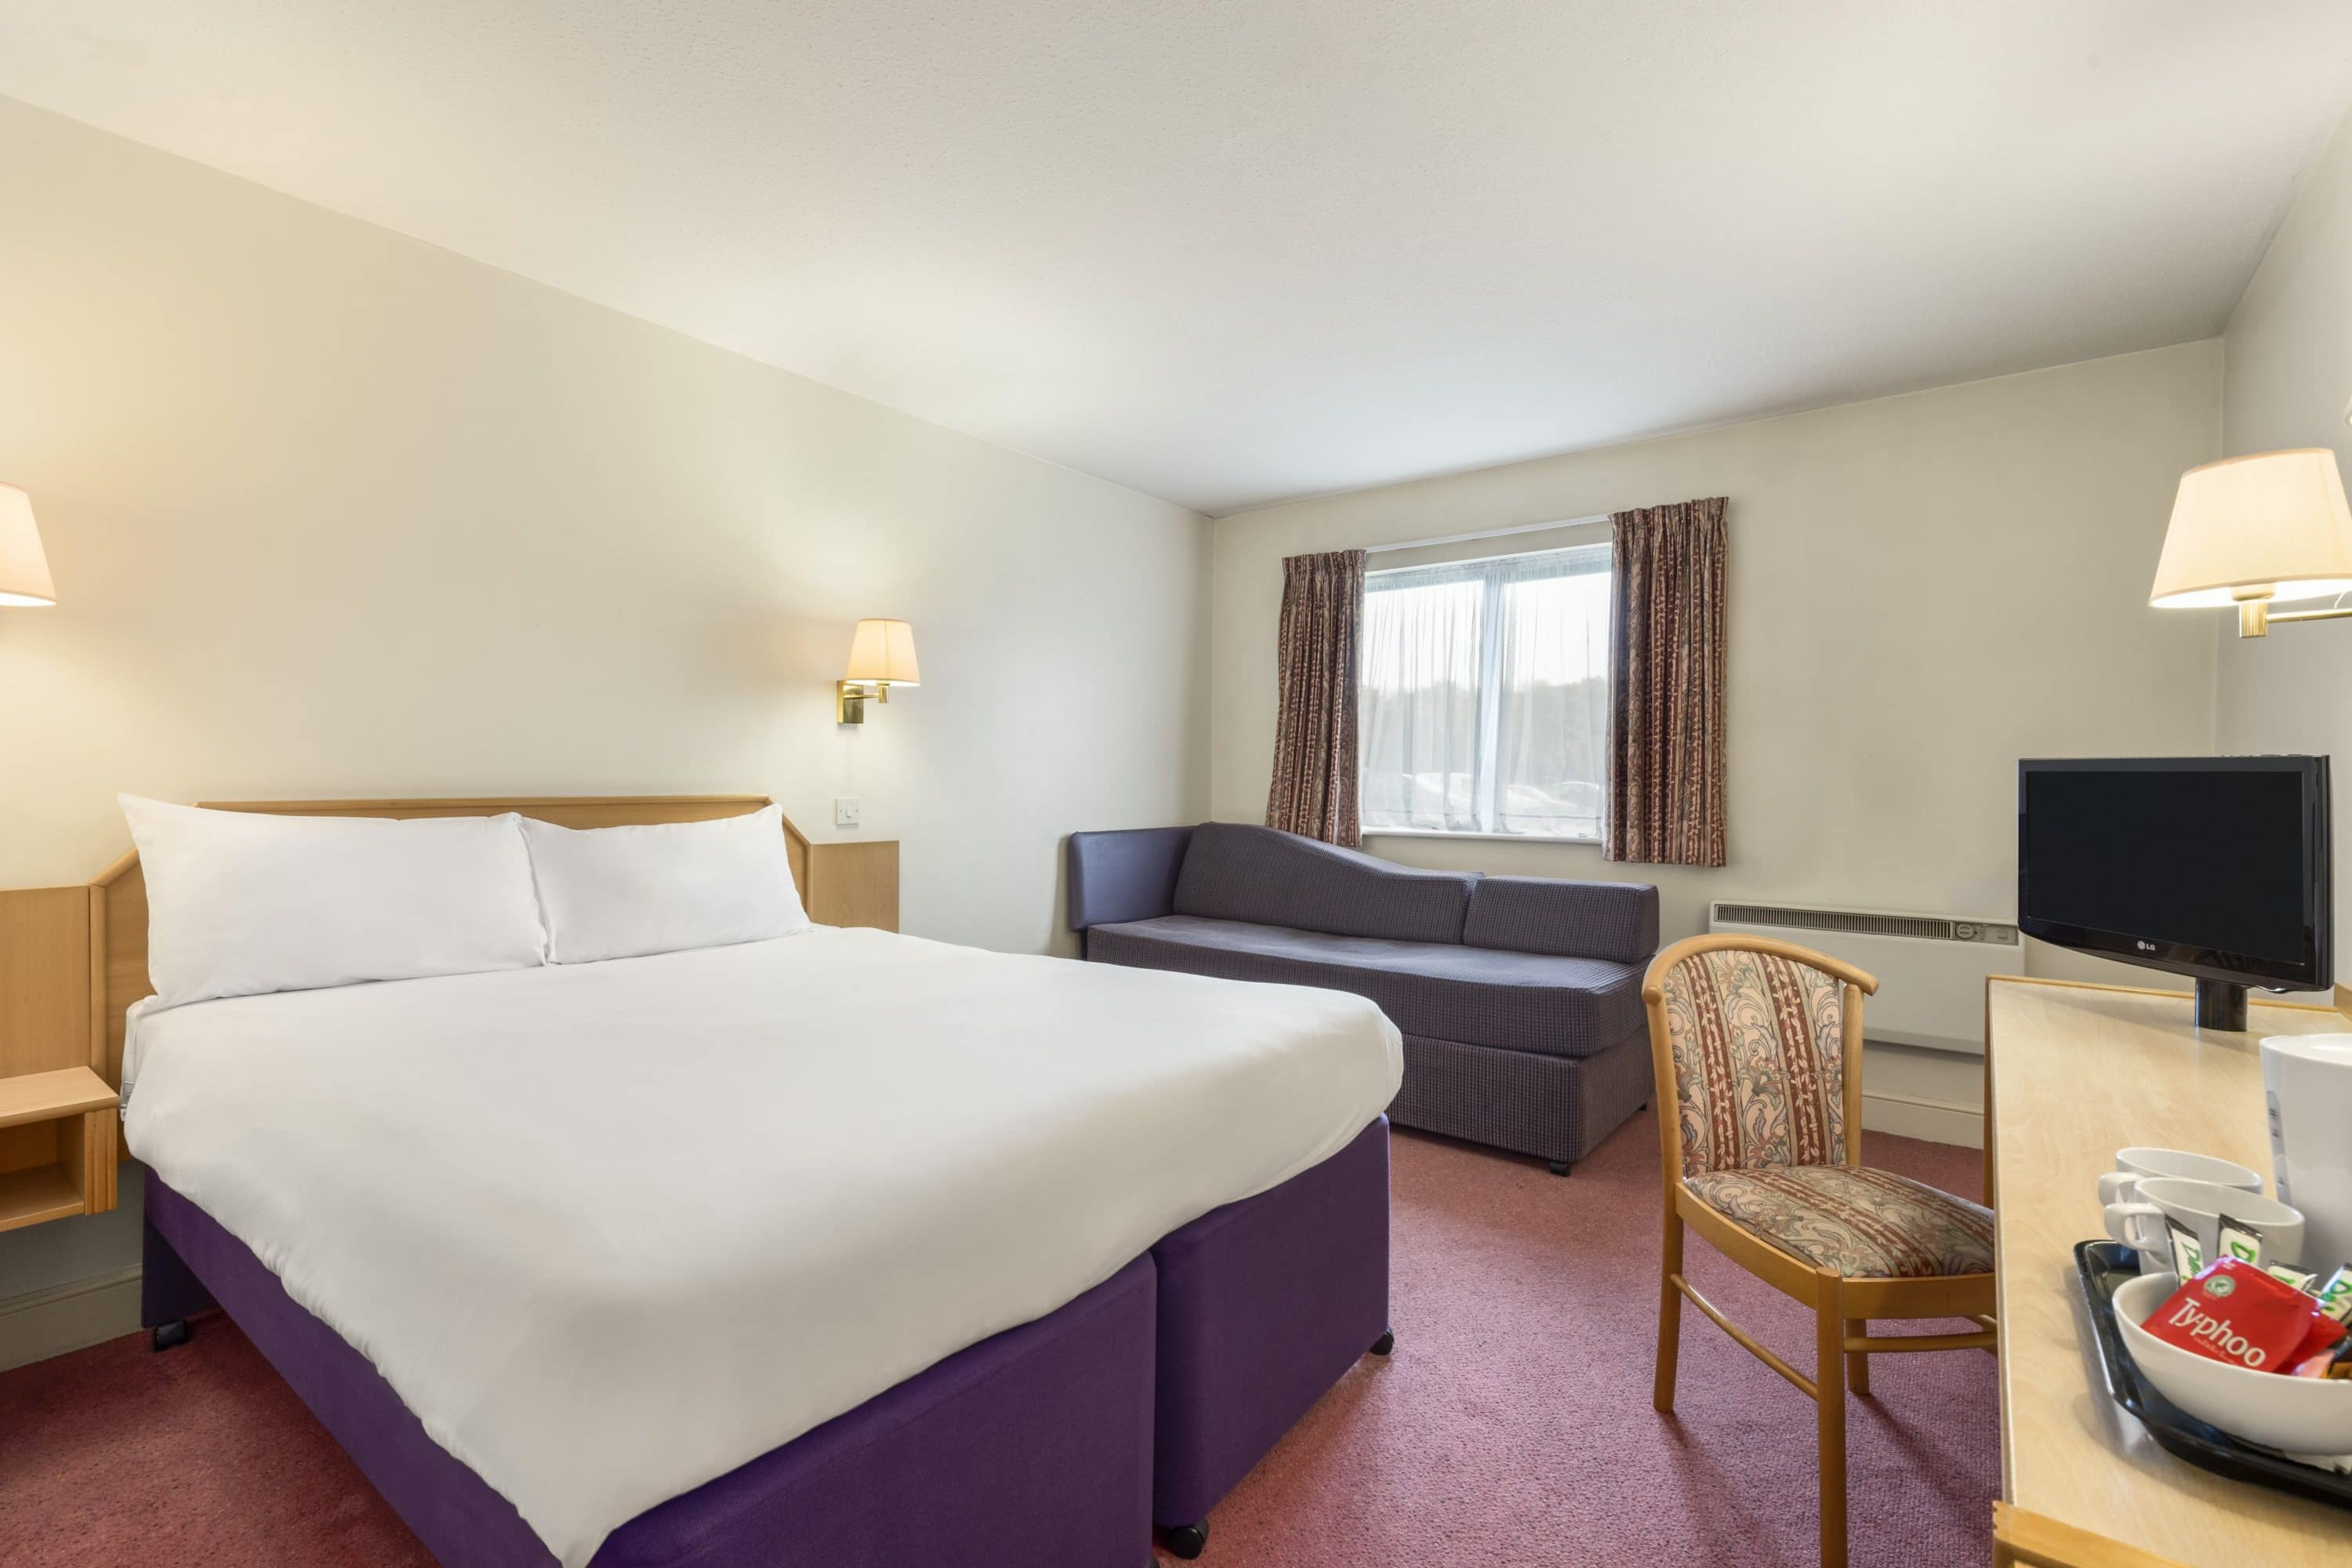 Guest room at the Days Inn Chesterfield Tibshelf in Tibshelf, Other than US/Canada